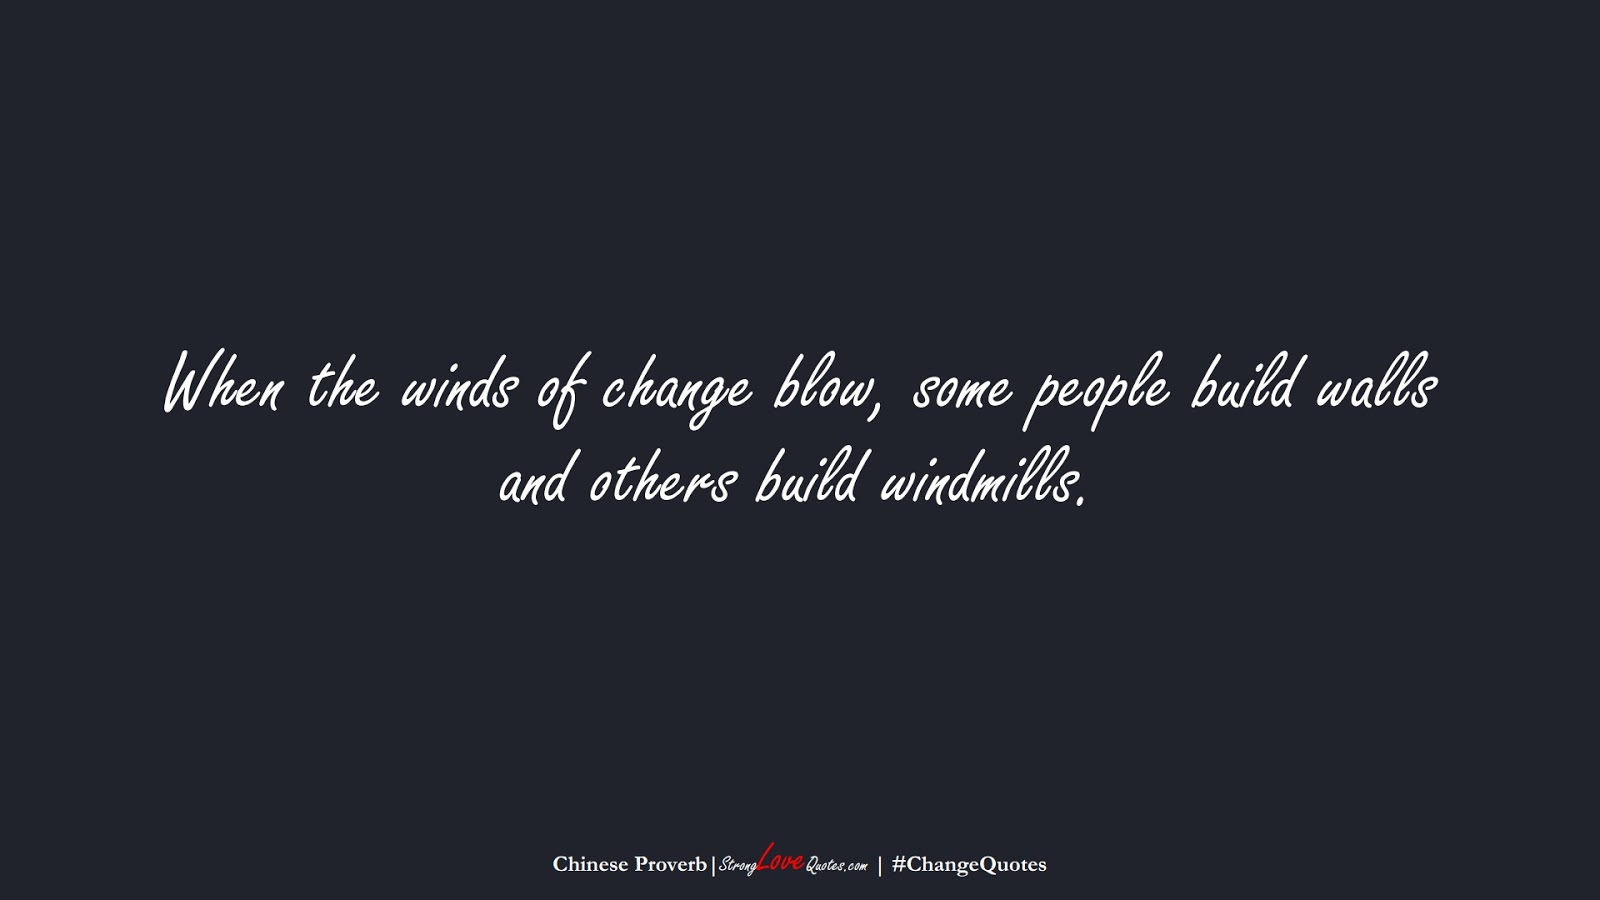 When the winds of change blow, some people build walls and others build windmills. (Chinese Proverb);  #ChangeQuotes